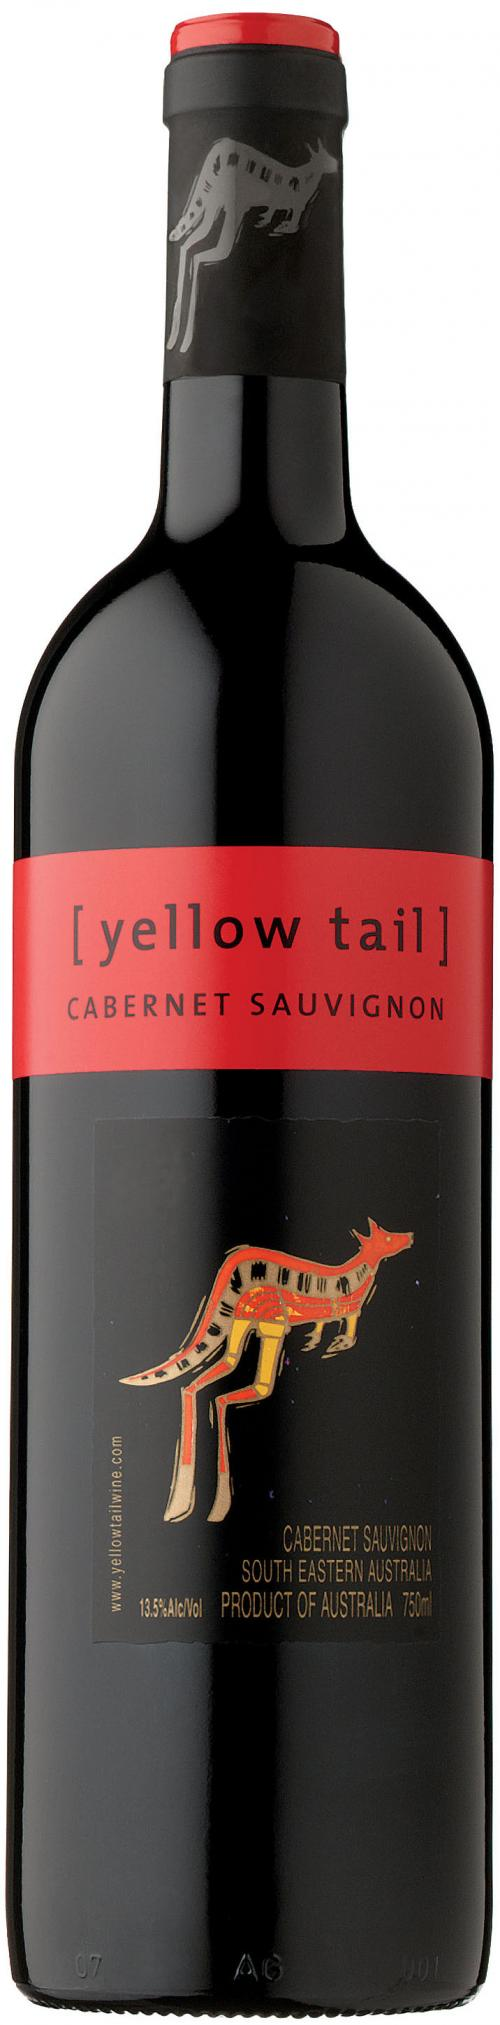 Yellow Tail Cabernet Sauvignon Cheap But Good Wine Cabernet Sauvignon Wine Snob Wine And Spirits